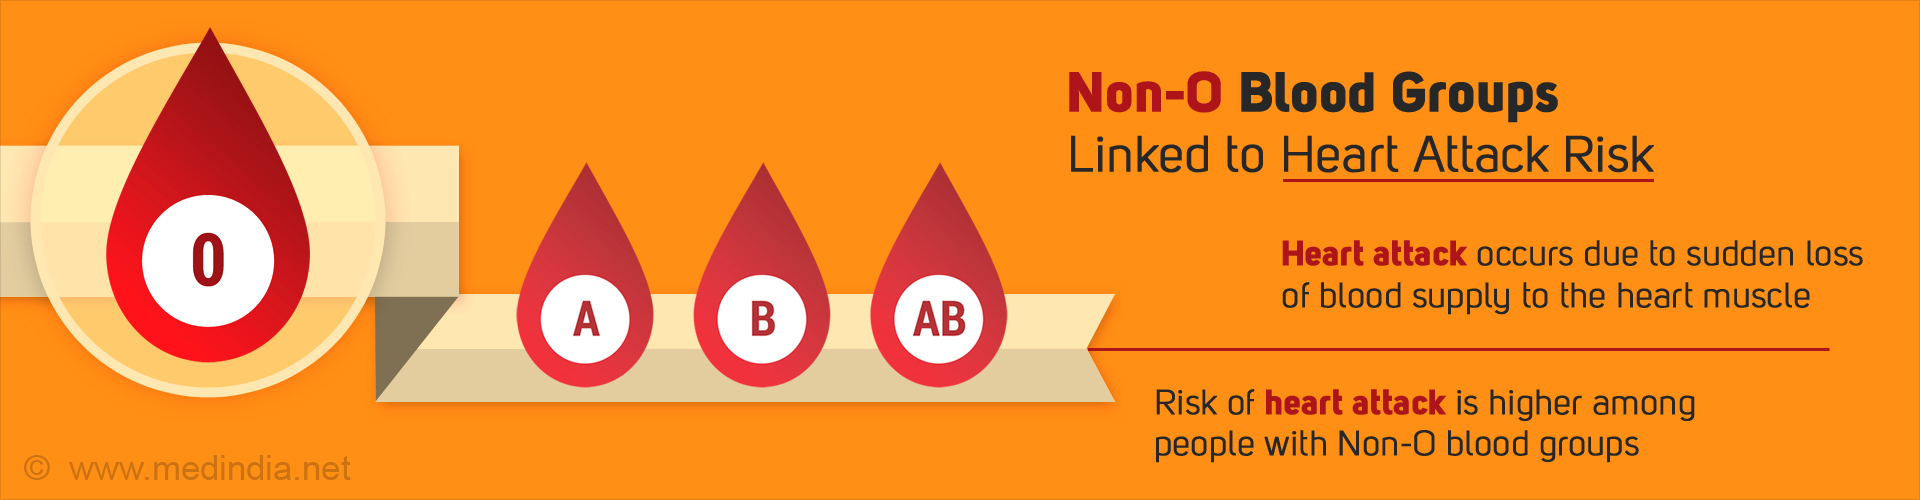 Non-O Blood Groups Linked to Heart Attack Risk